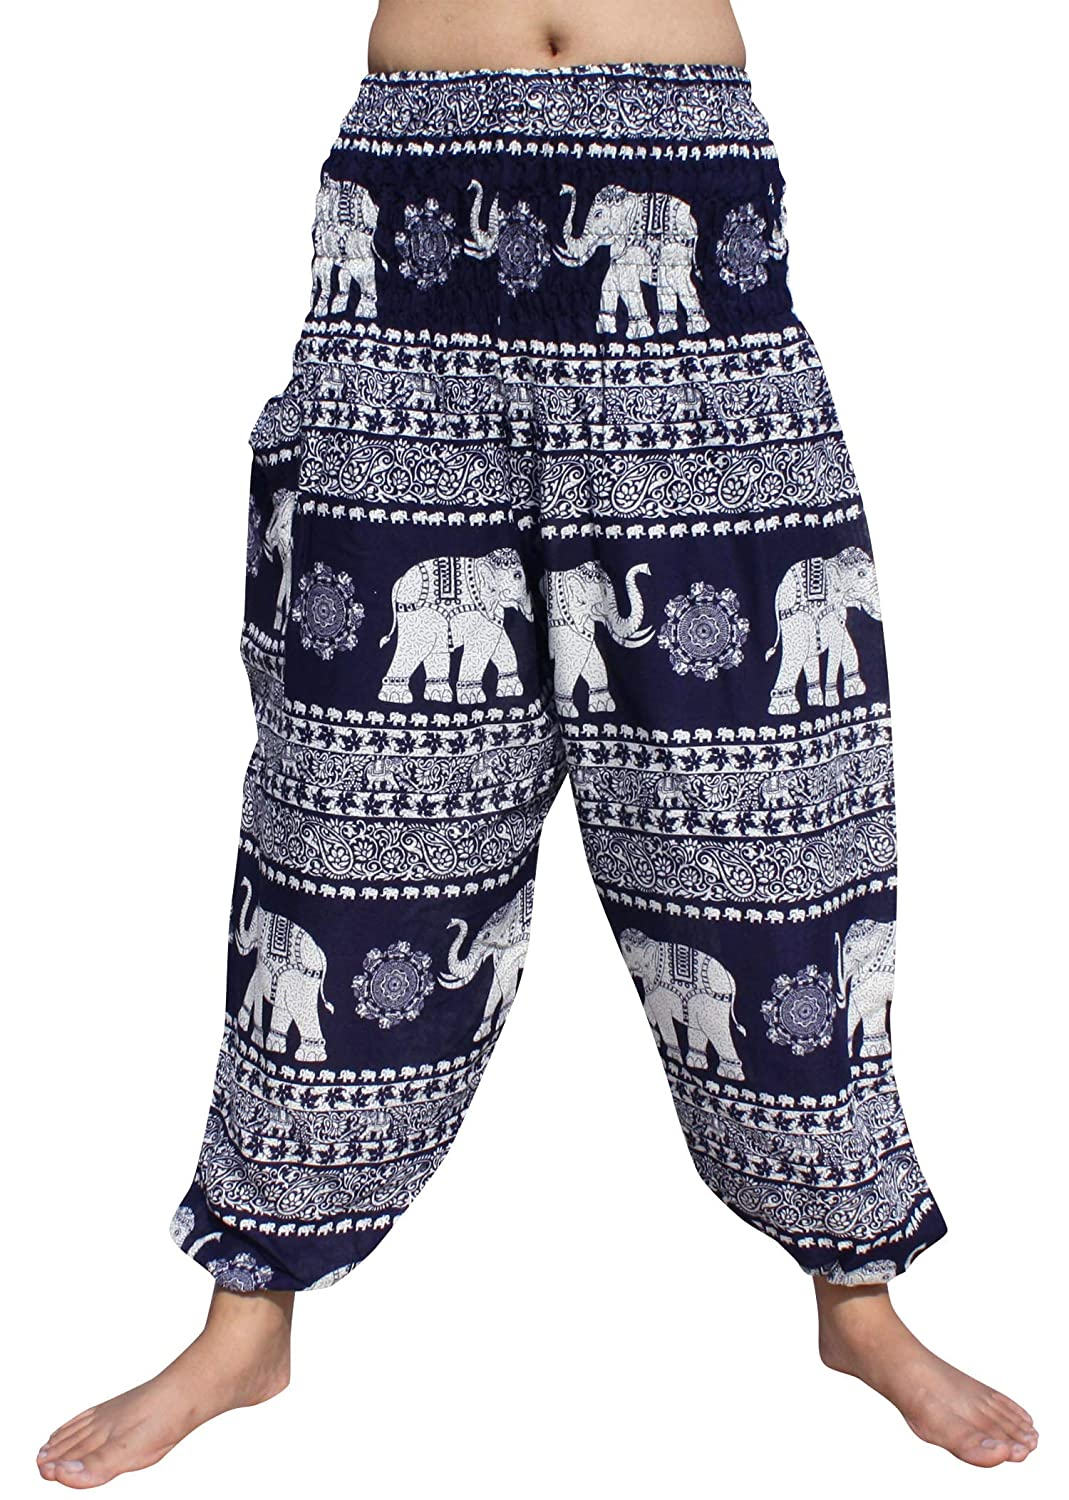 Elephant in Line Navy bluee Full Funk Smocked Waist Women's Yoga Palazzo Hippie Boho Harem Pants Elephants